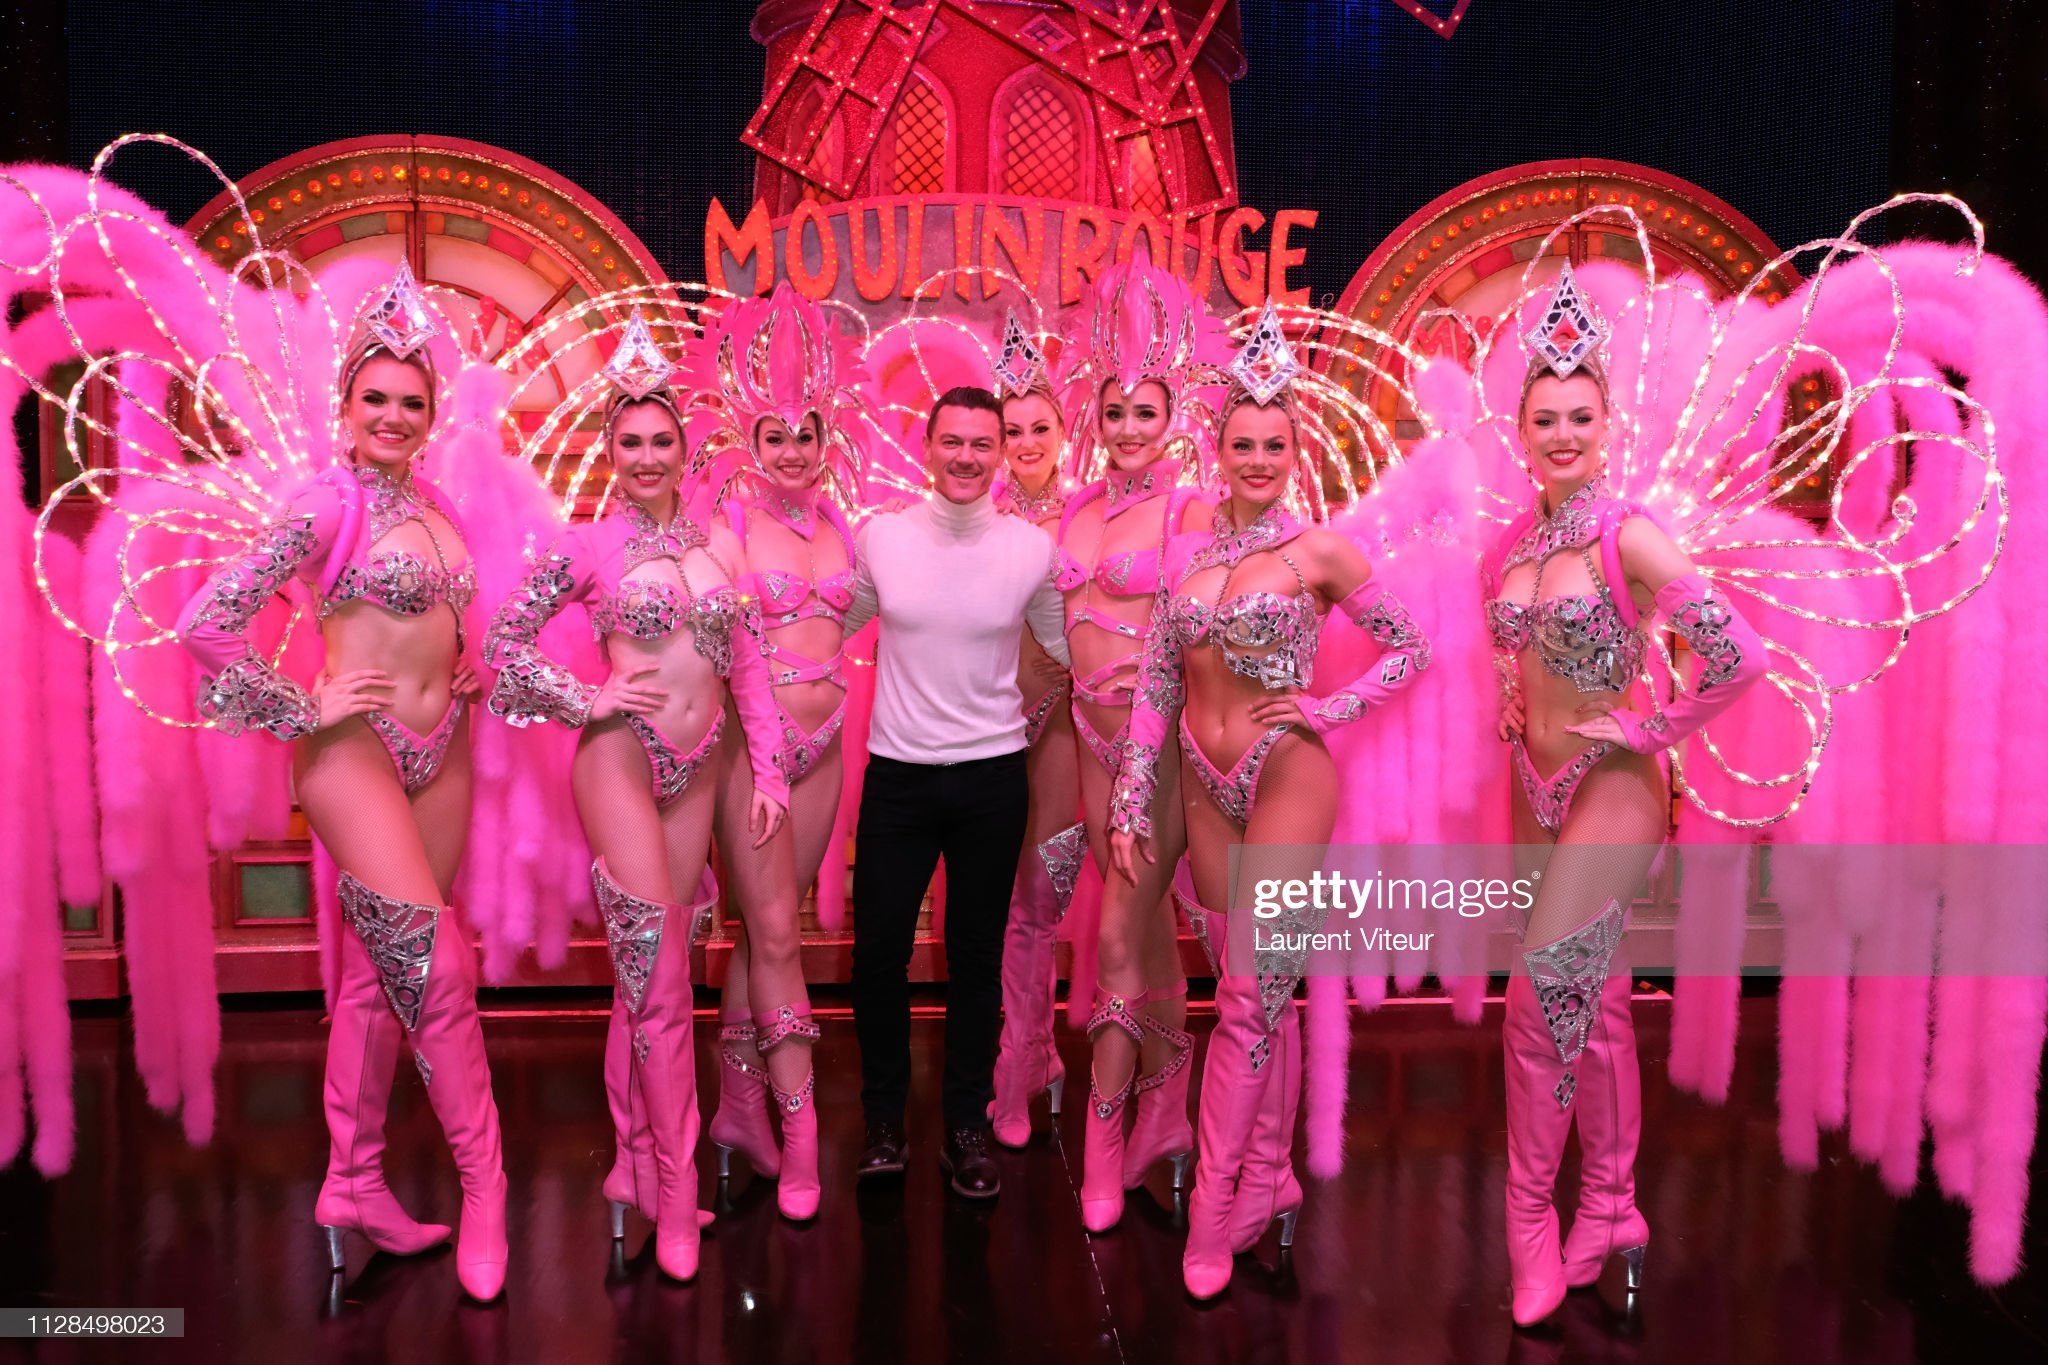 actor-luke-evans-with-the-dancers-of-moulin-rouge-attends-feerie-at-picture-id1128498023